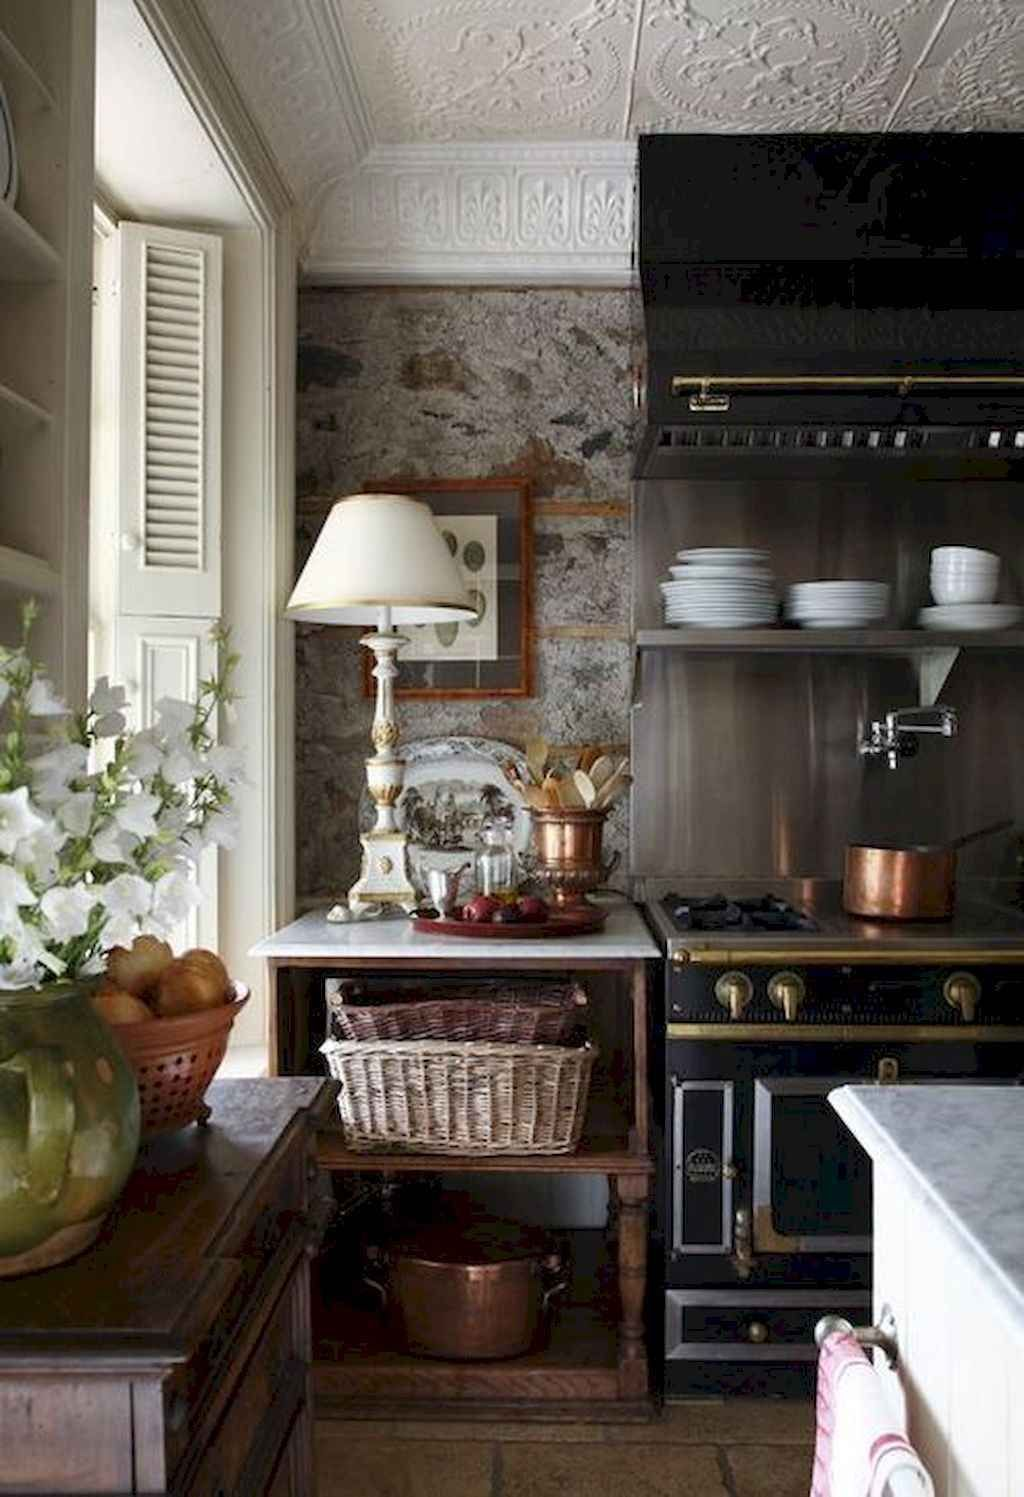 26 beautiful french country kitchen design and decor ideas  Wholehomekover  beautiful